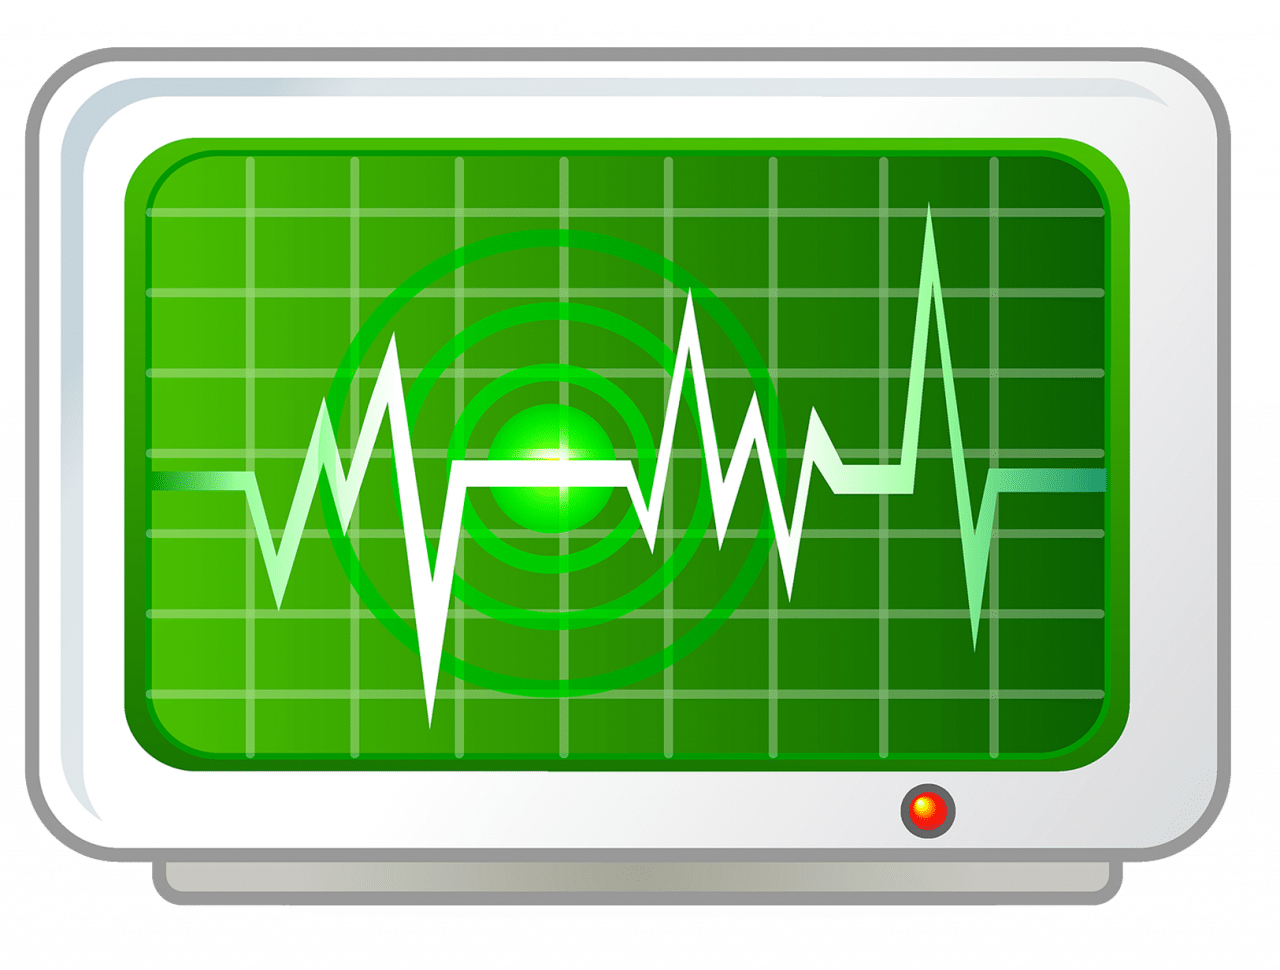 kisspng-electrocardiography-medical-equipment-ecg-monitoring-5a9a8a9635faf5.4184546115200774622211-1280x970.png